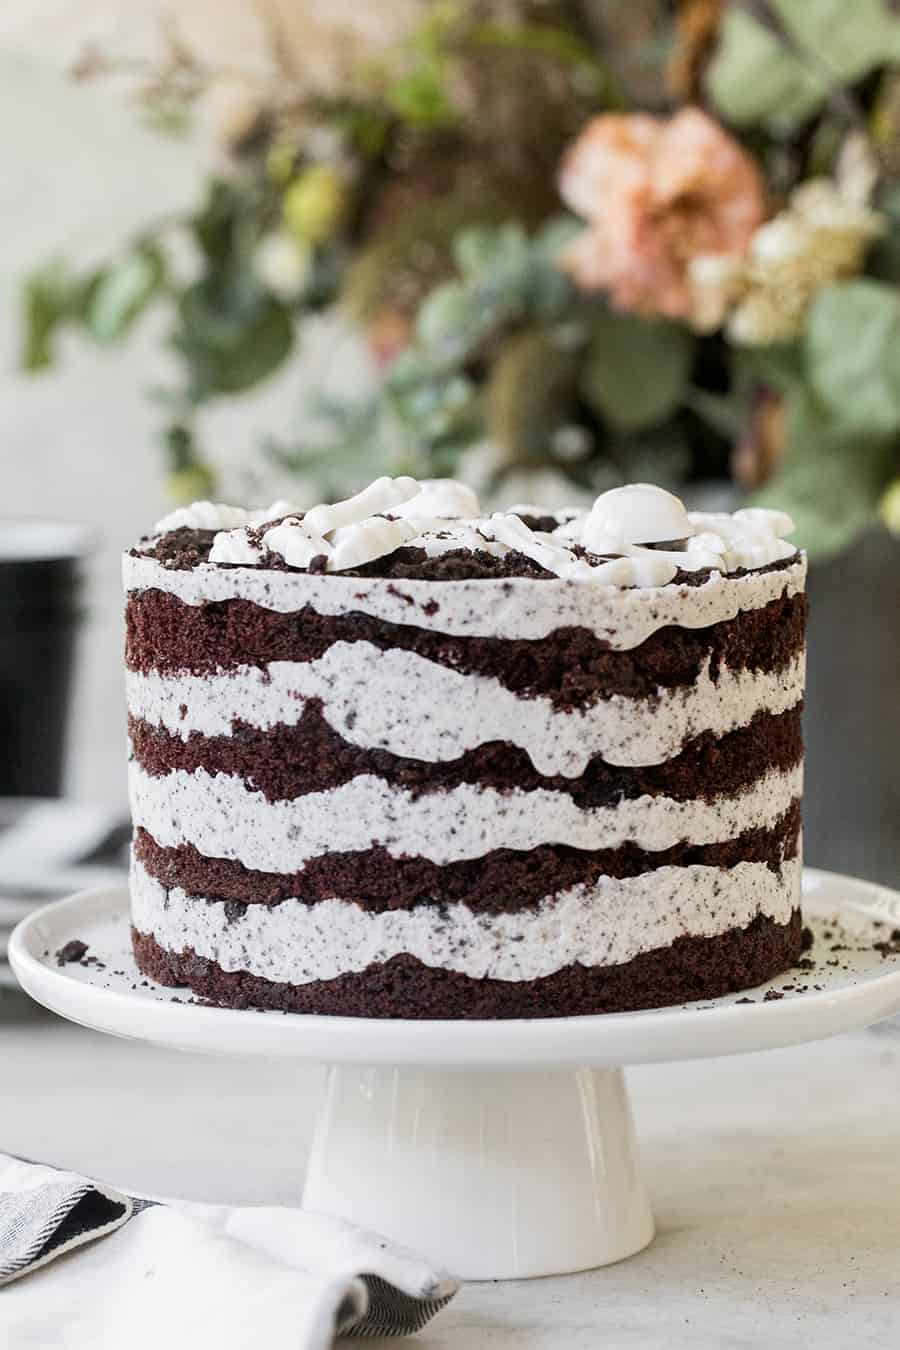 Layered Oreo cake with chocolate and oreo cream.